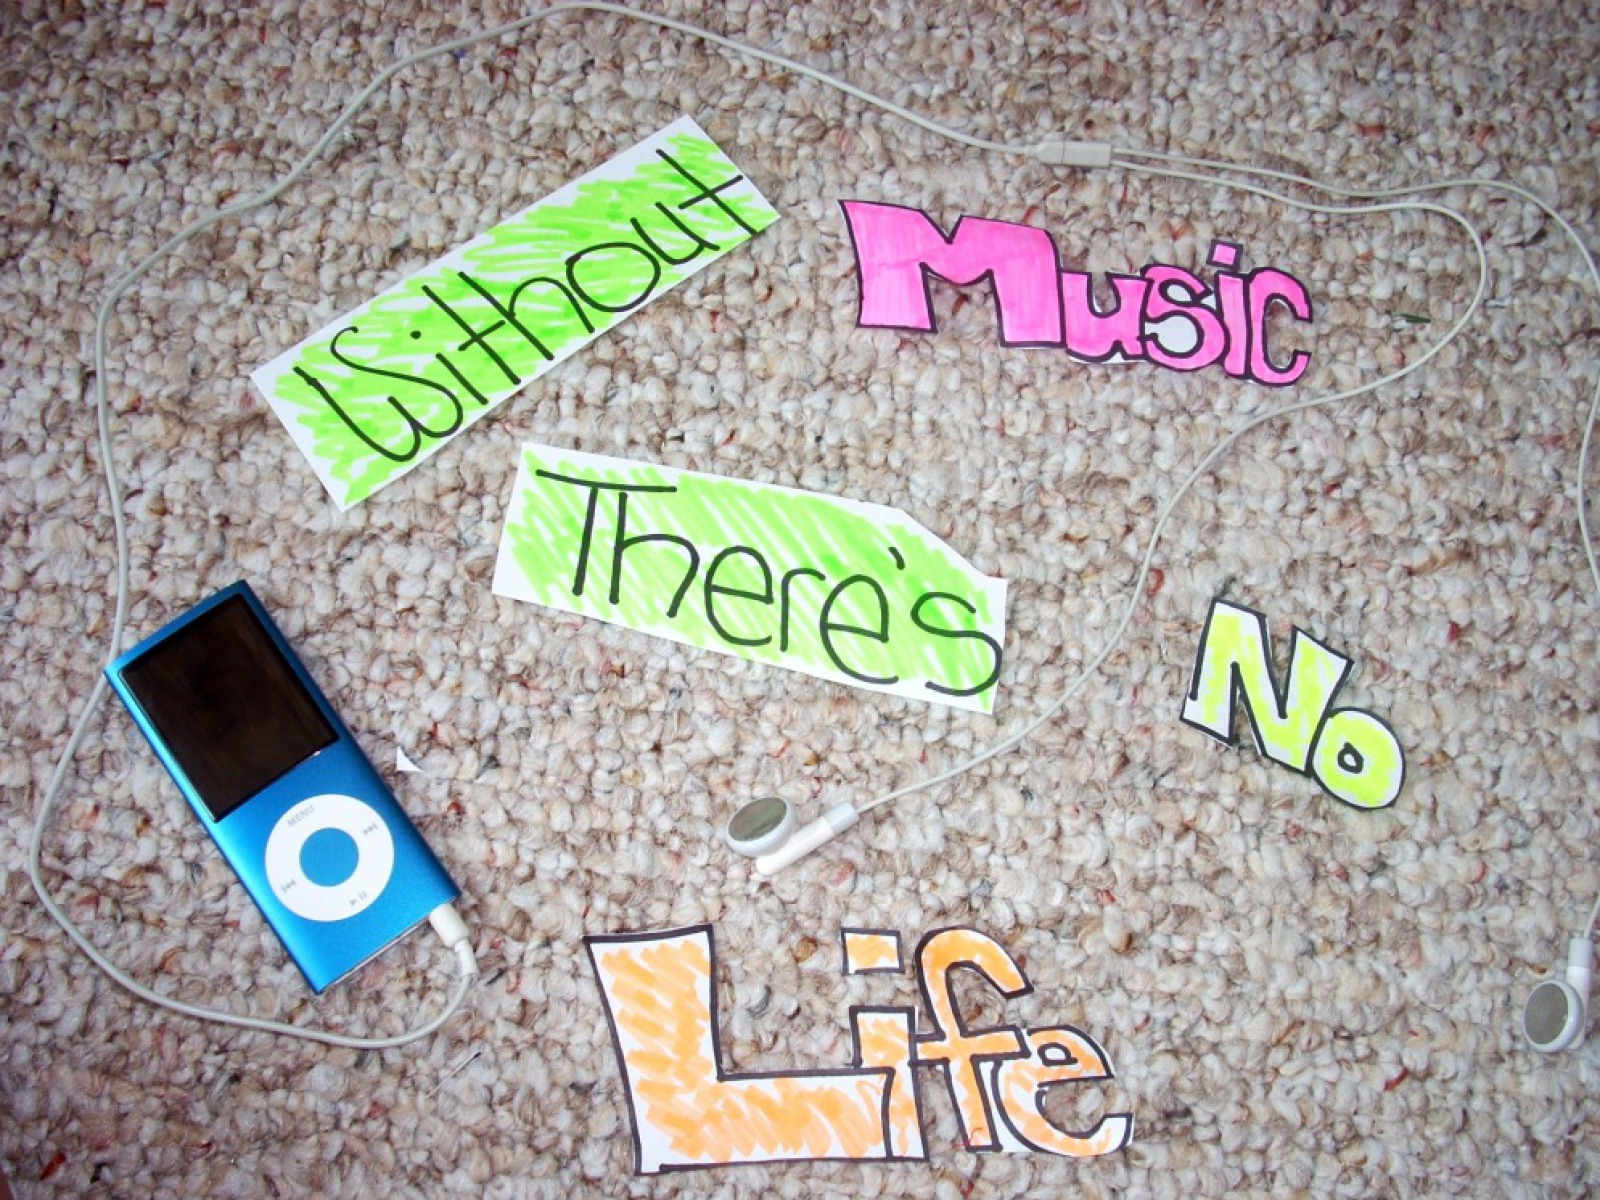 Without music there is no life hd desktop wallpaper rewallpaper - Music is life hd ...